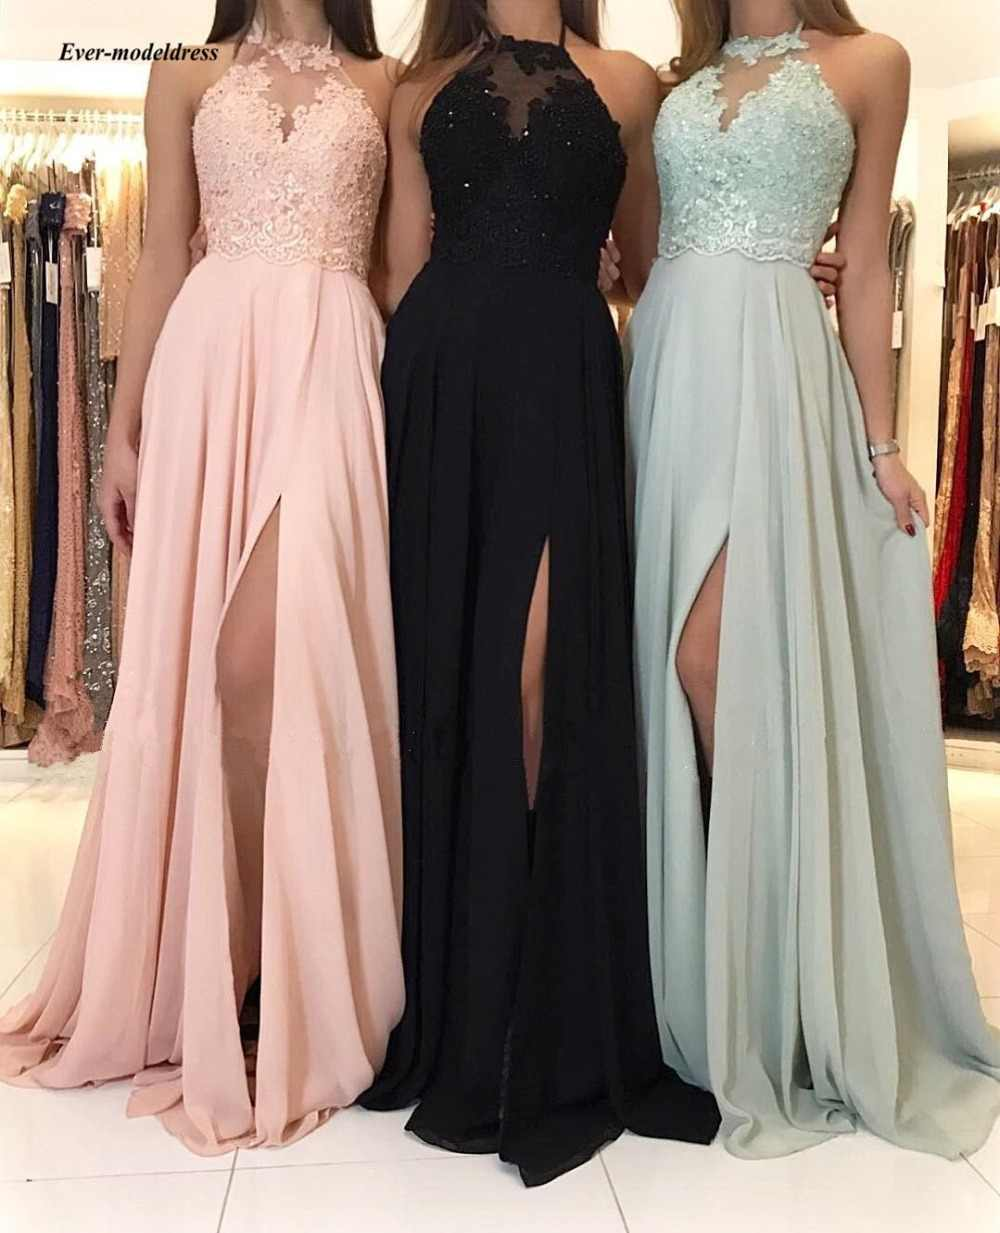 2019 Simple Chiffon Bridesmaid Dresses High Neck High Split Lace Sleeveless  Beaded Long Wedding Guest Party 0d464c780320